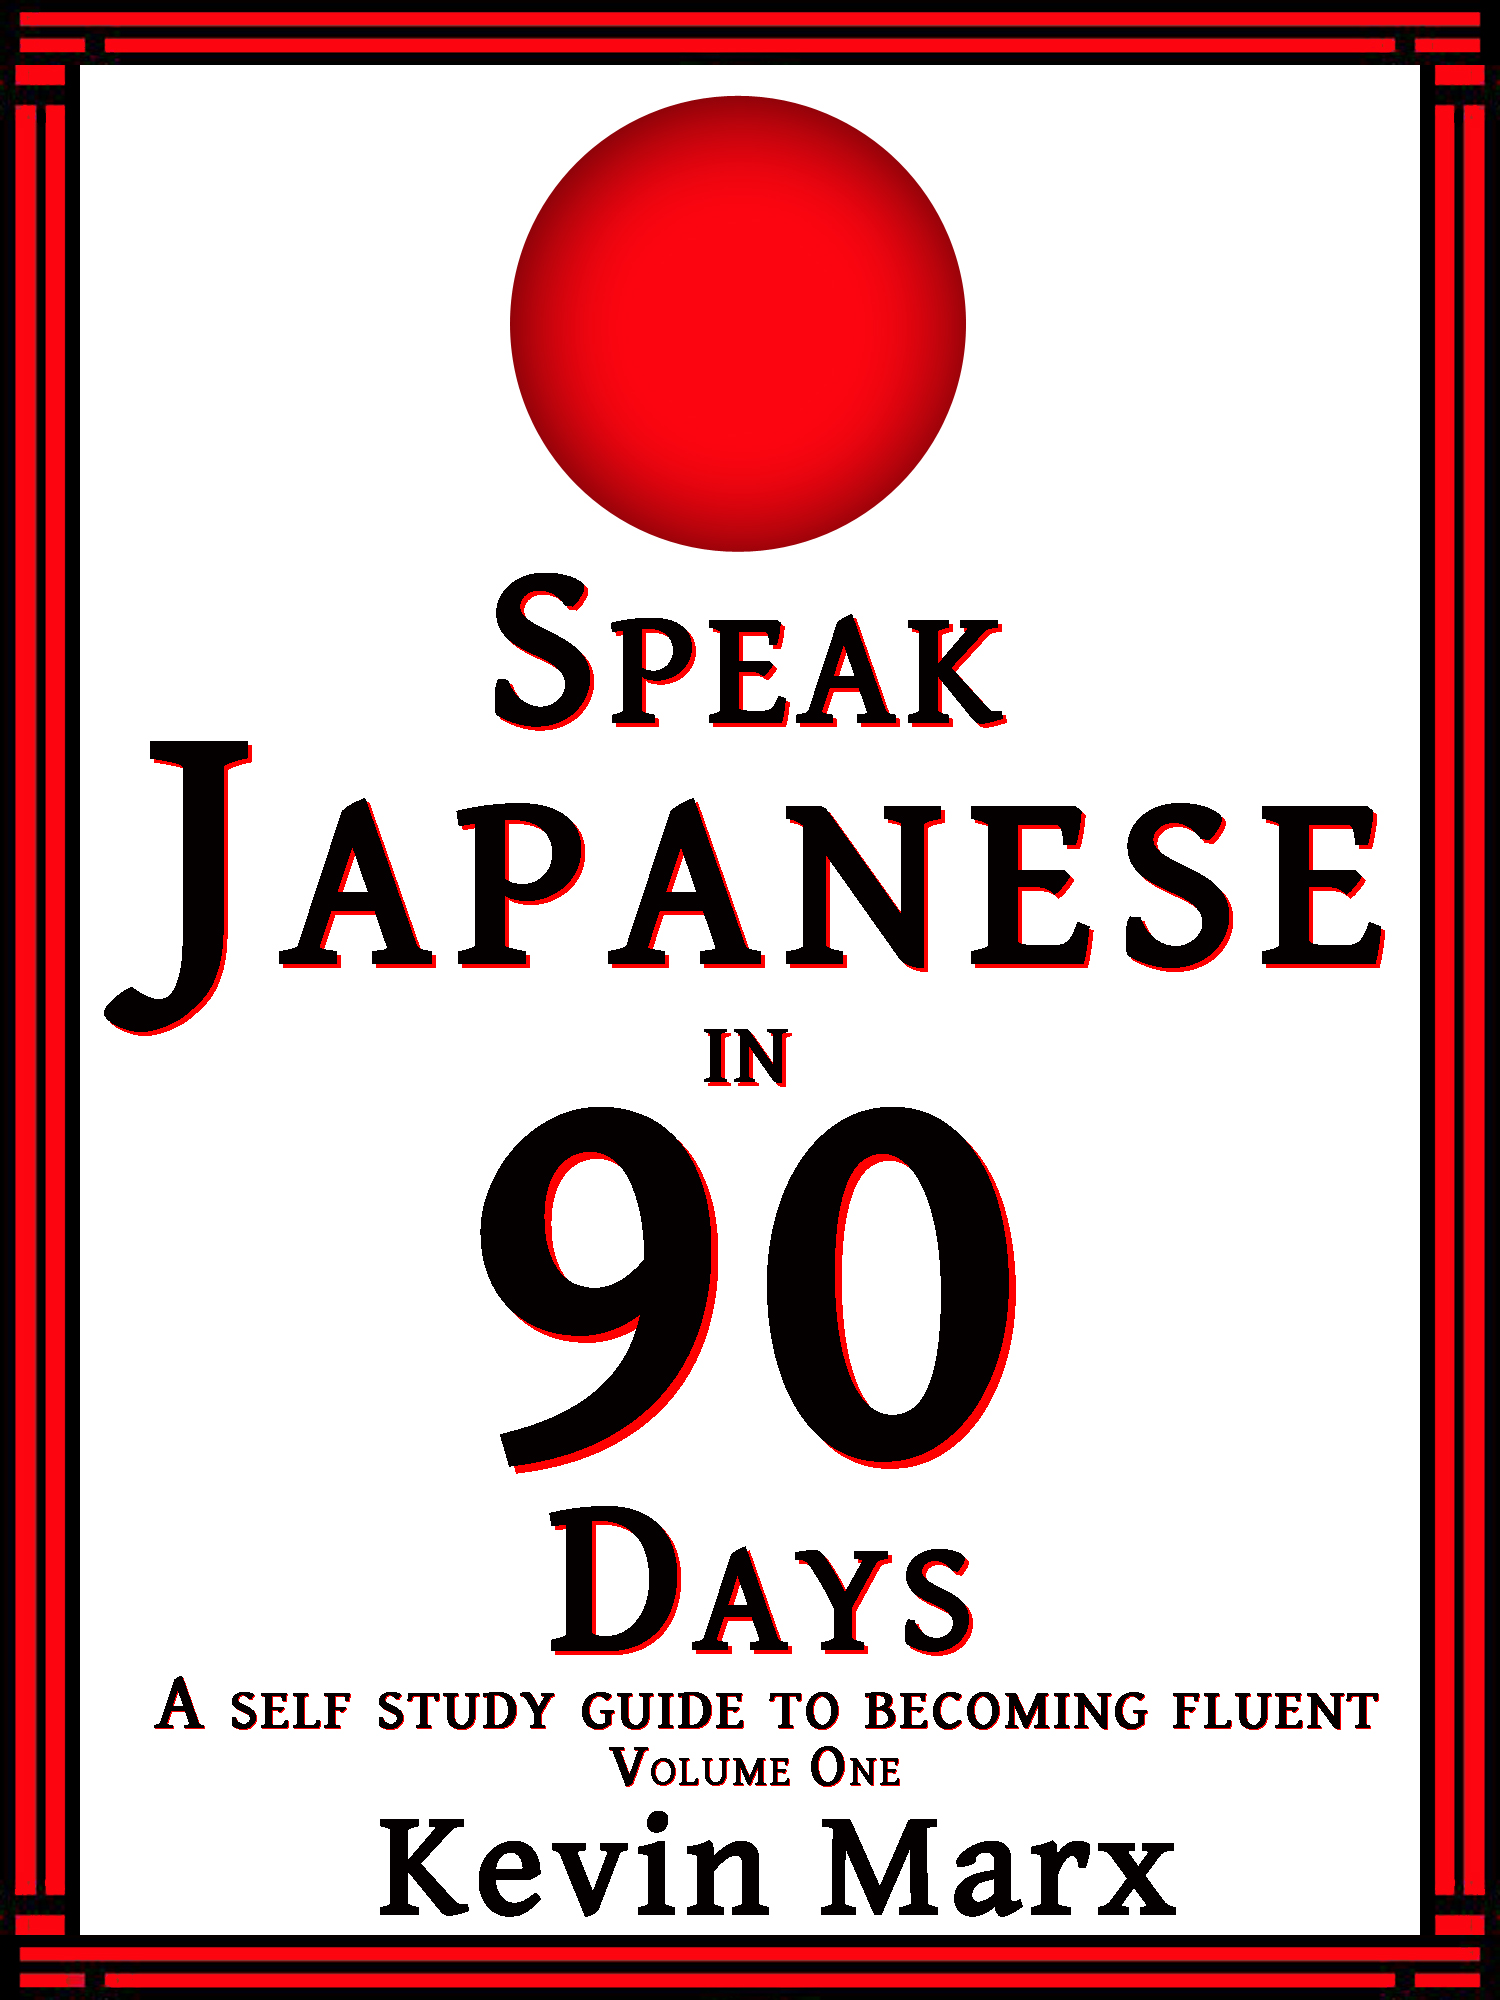 Speak Japanese in 90 Days: A Self Study Guide to Becoming Fluent, Volume  One, an Ebook by Kevin Marx